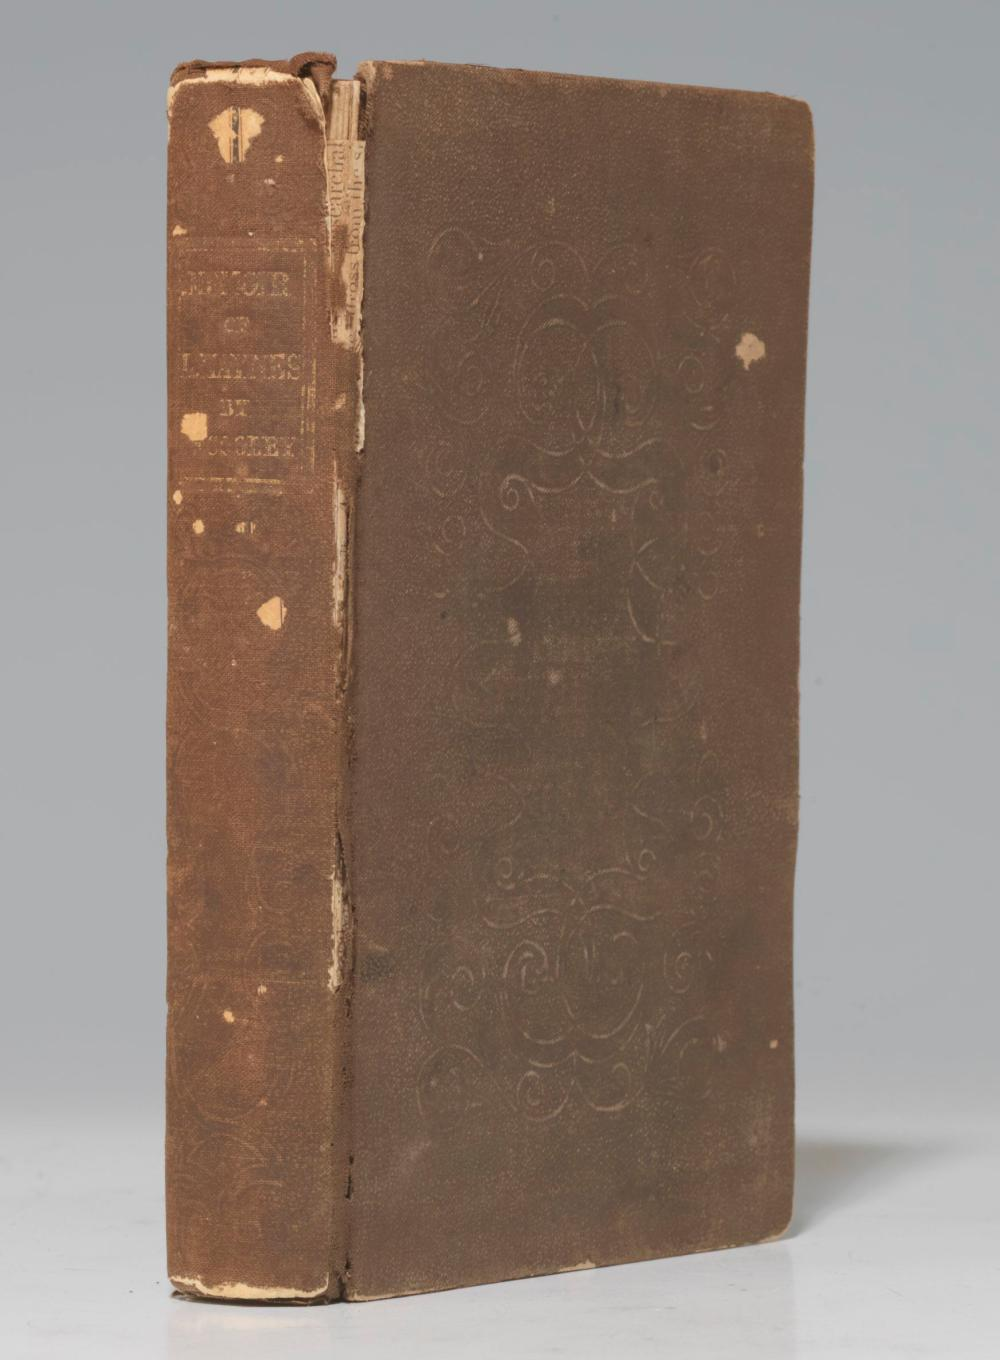 First Edition Biography of Rev. Lemuel Haynes, Signed by John Brown, About an African American Minuteman, First to Lead a White Church